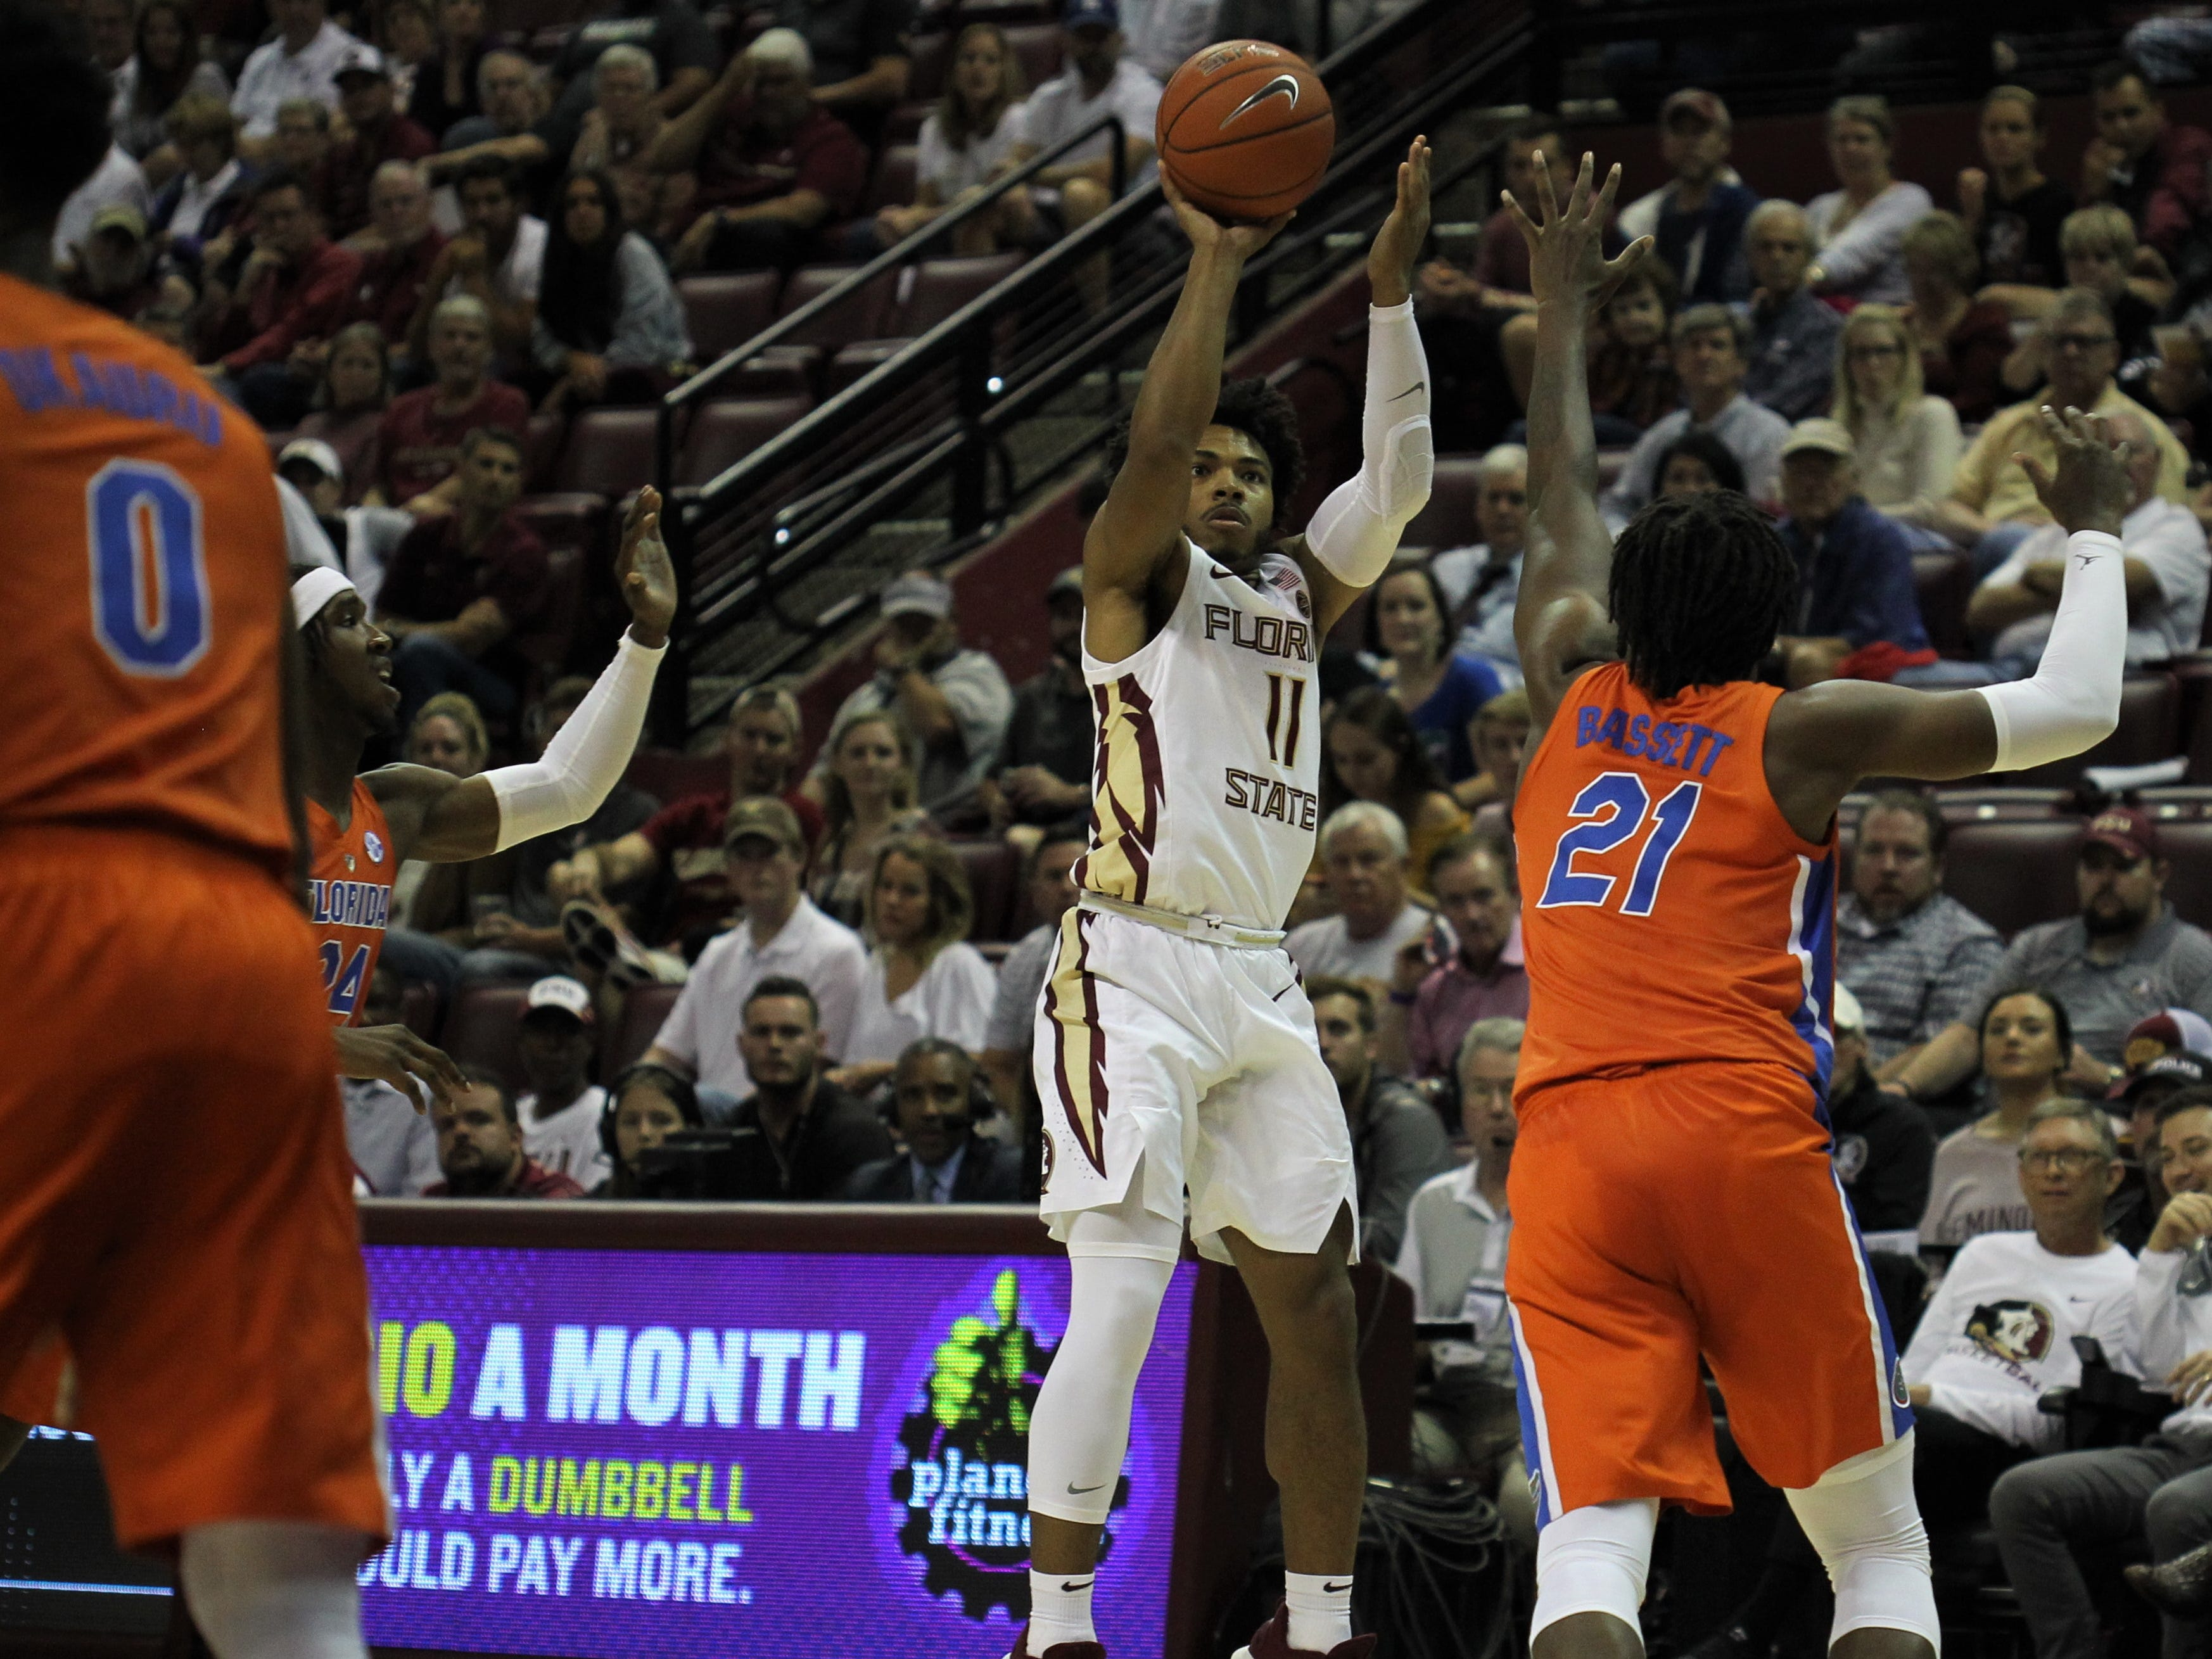 Florida State's David Nichols shoot a 3-pointer against Florida during the Sunshine Showdown game Tuesday at the Tucker Civic Center.